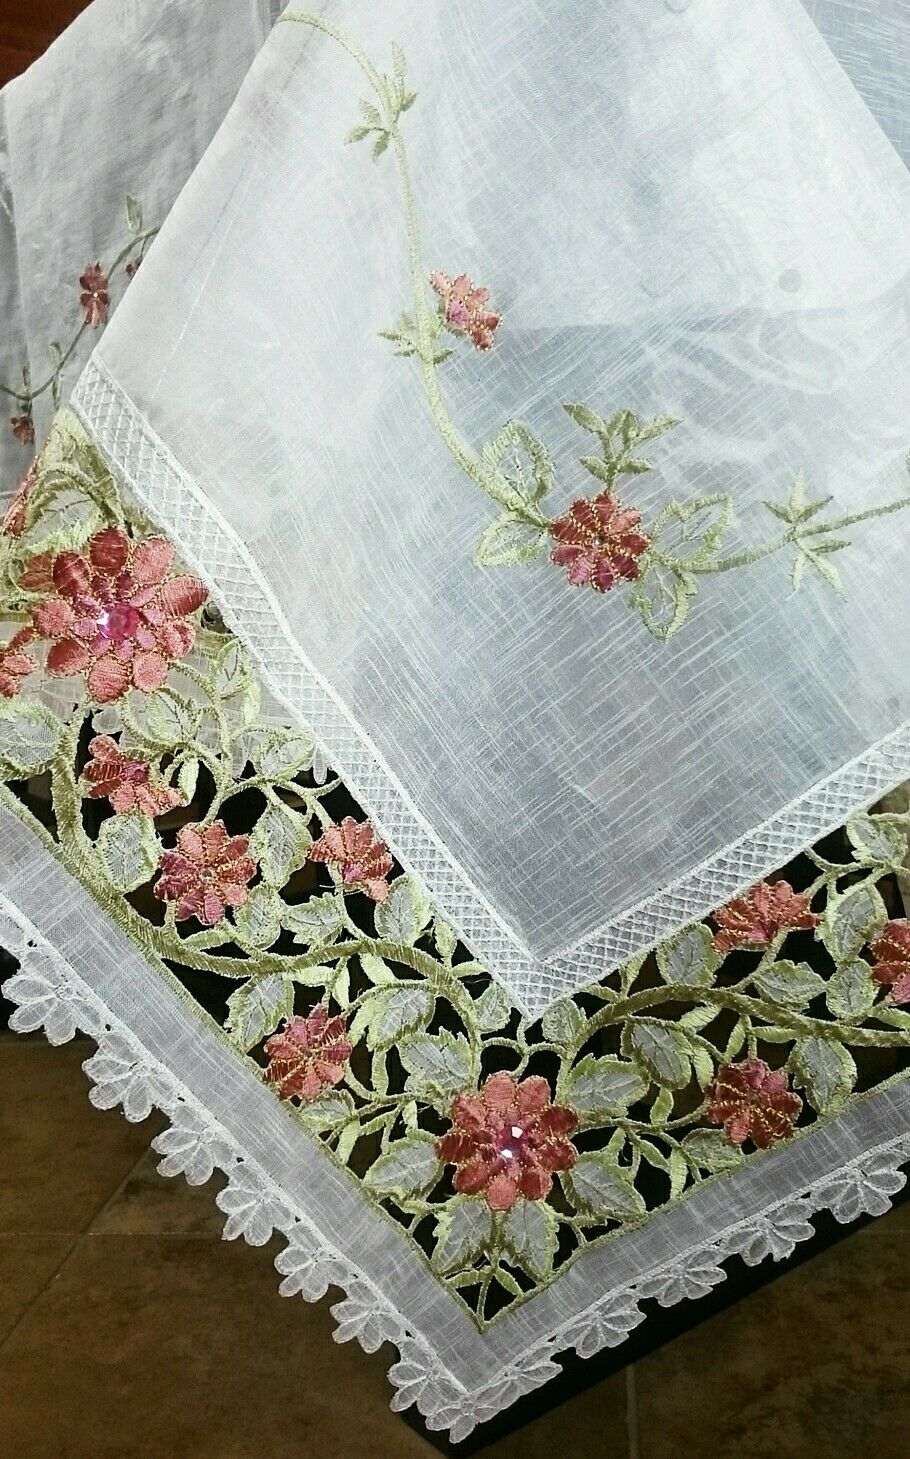 72x90  Embroidery Sheer Handmade Rhinestone Jeweled Organza Cutwork Tablecloth